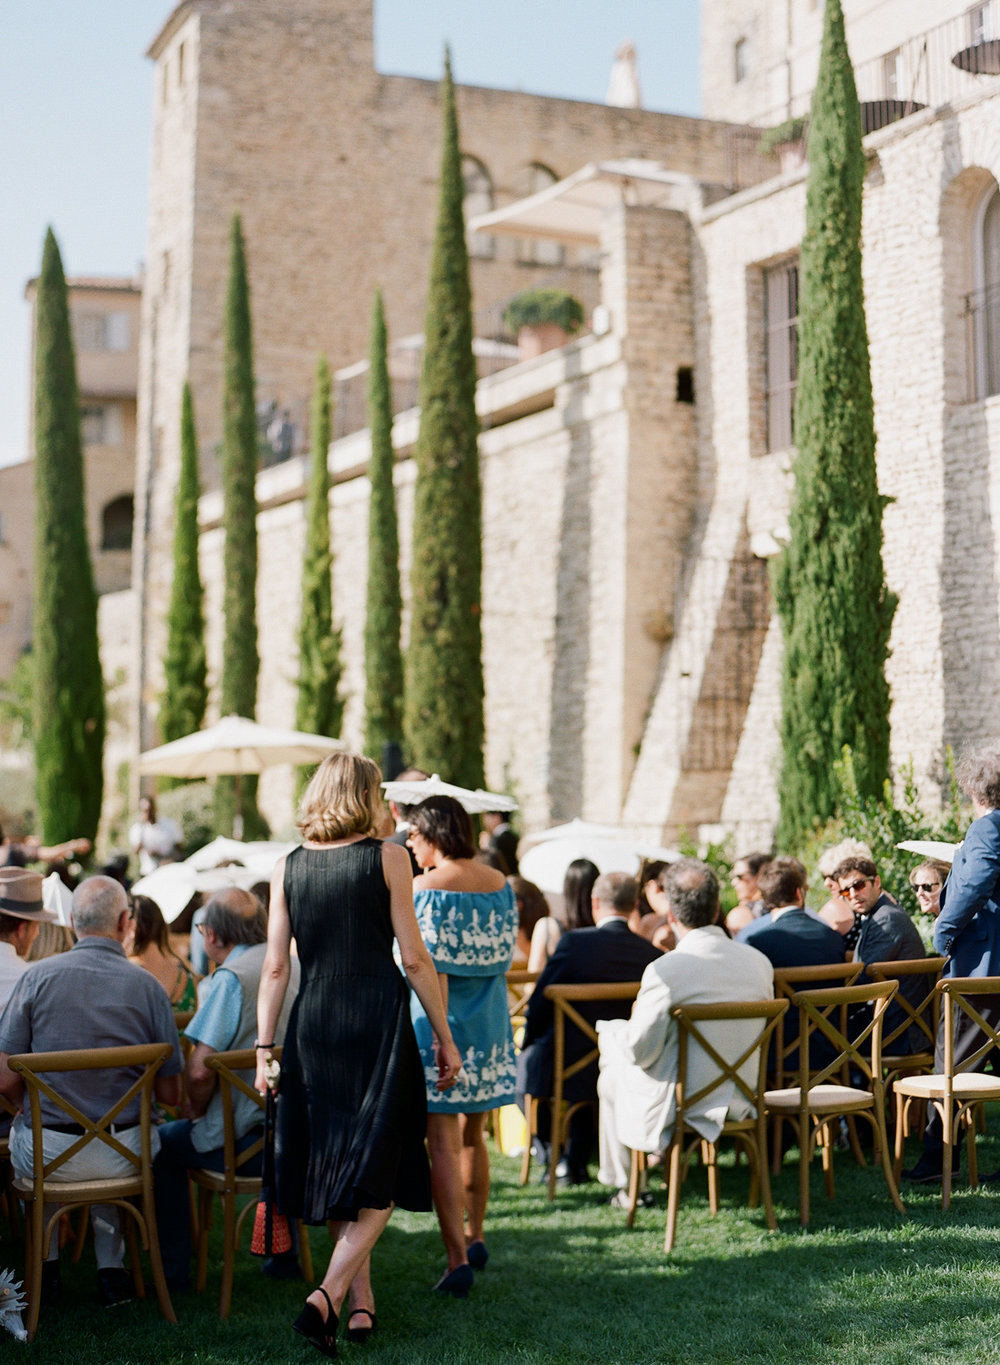 Guests arrive for a wedding in Gordes, Provence, France; Sylvie Gil Photography